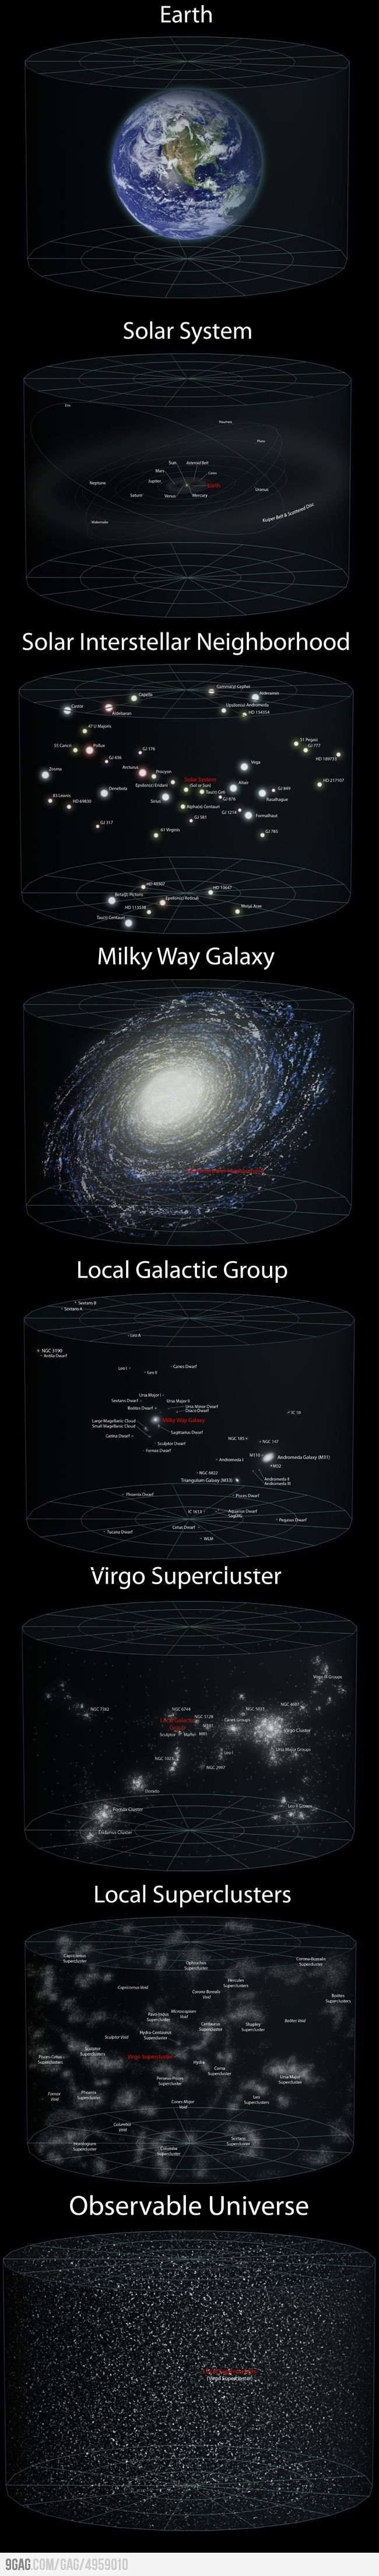 """""""Here, feel insignificant for a while..."""" Our place in the observable universe."""